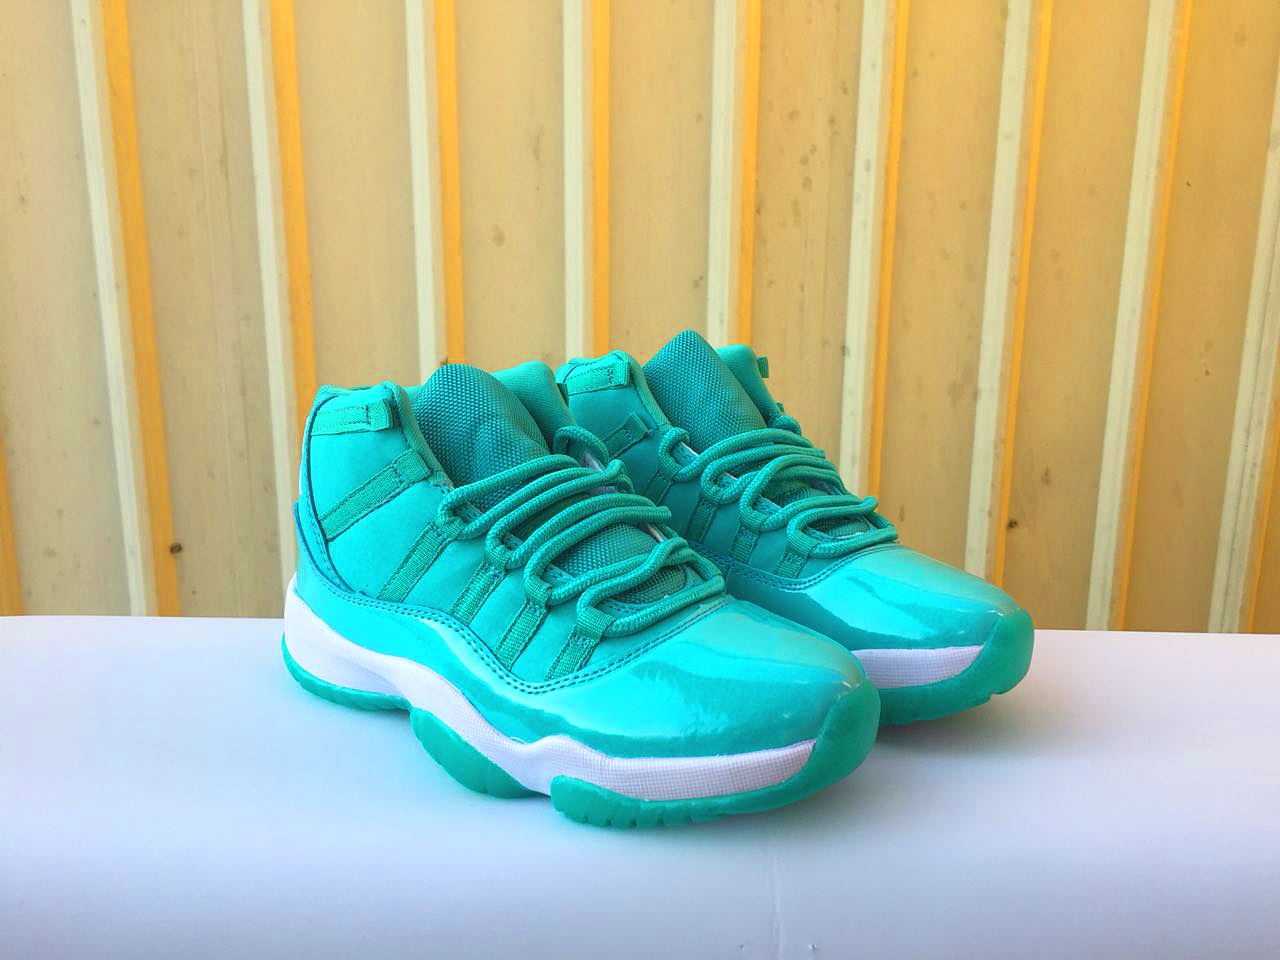 New Air Jordan 11 Retro Gint Green For Women